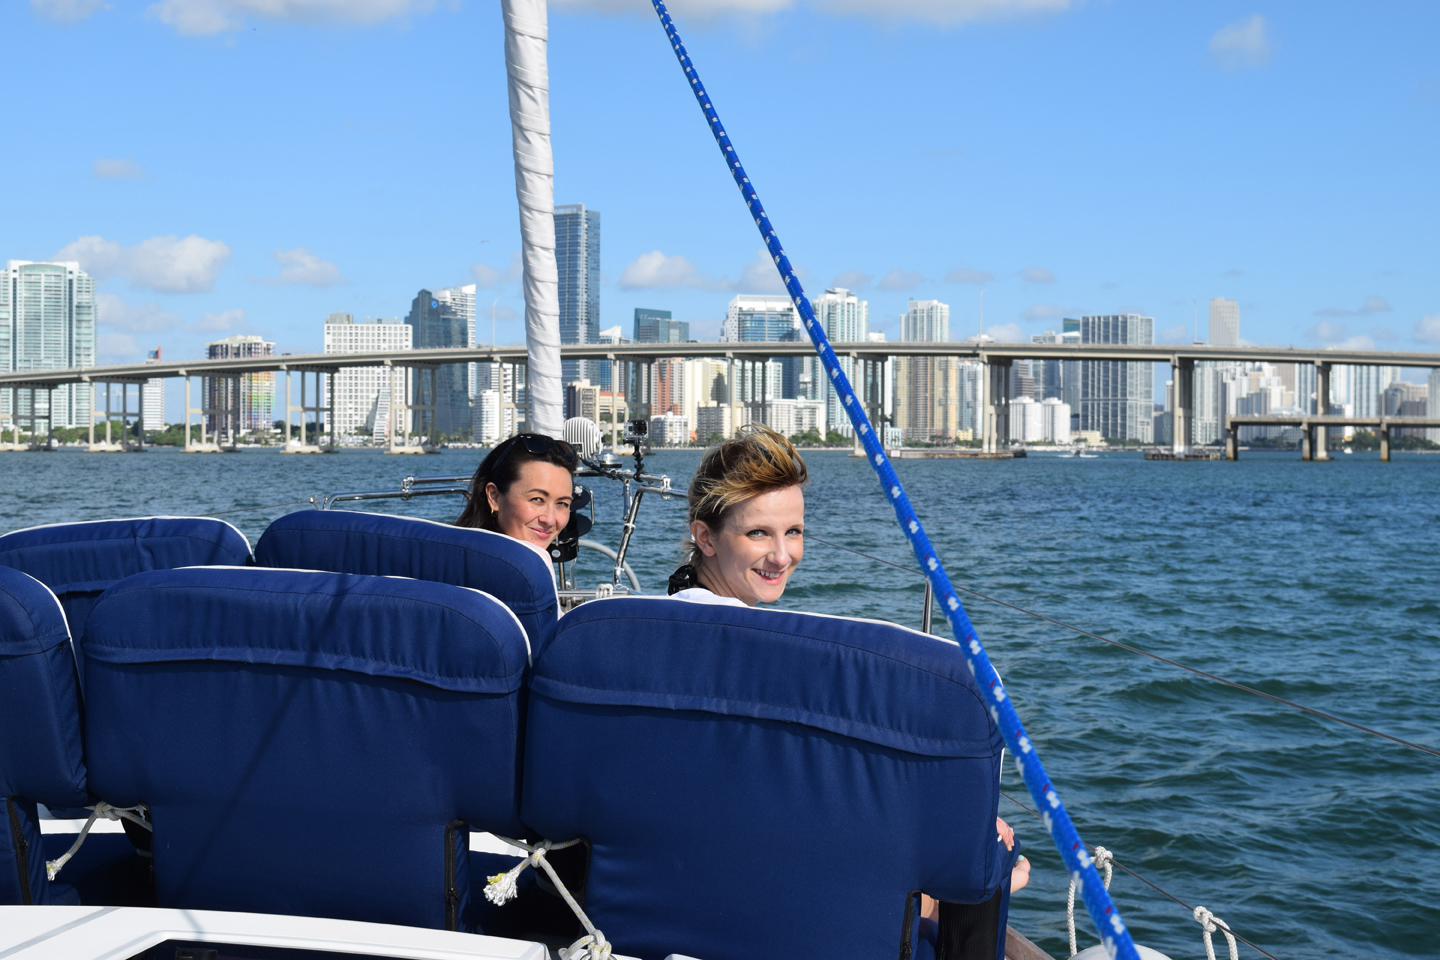 SAILING ALONG DOWNTOWN TO ADMIRE THE CITY SKYLINE